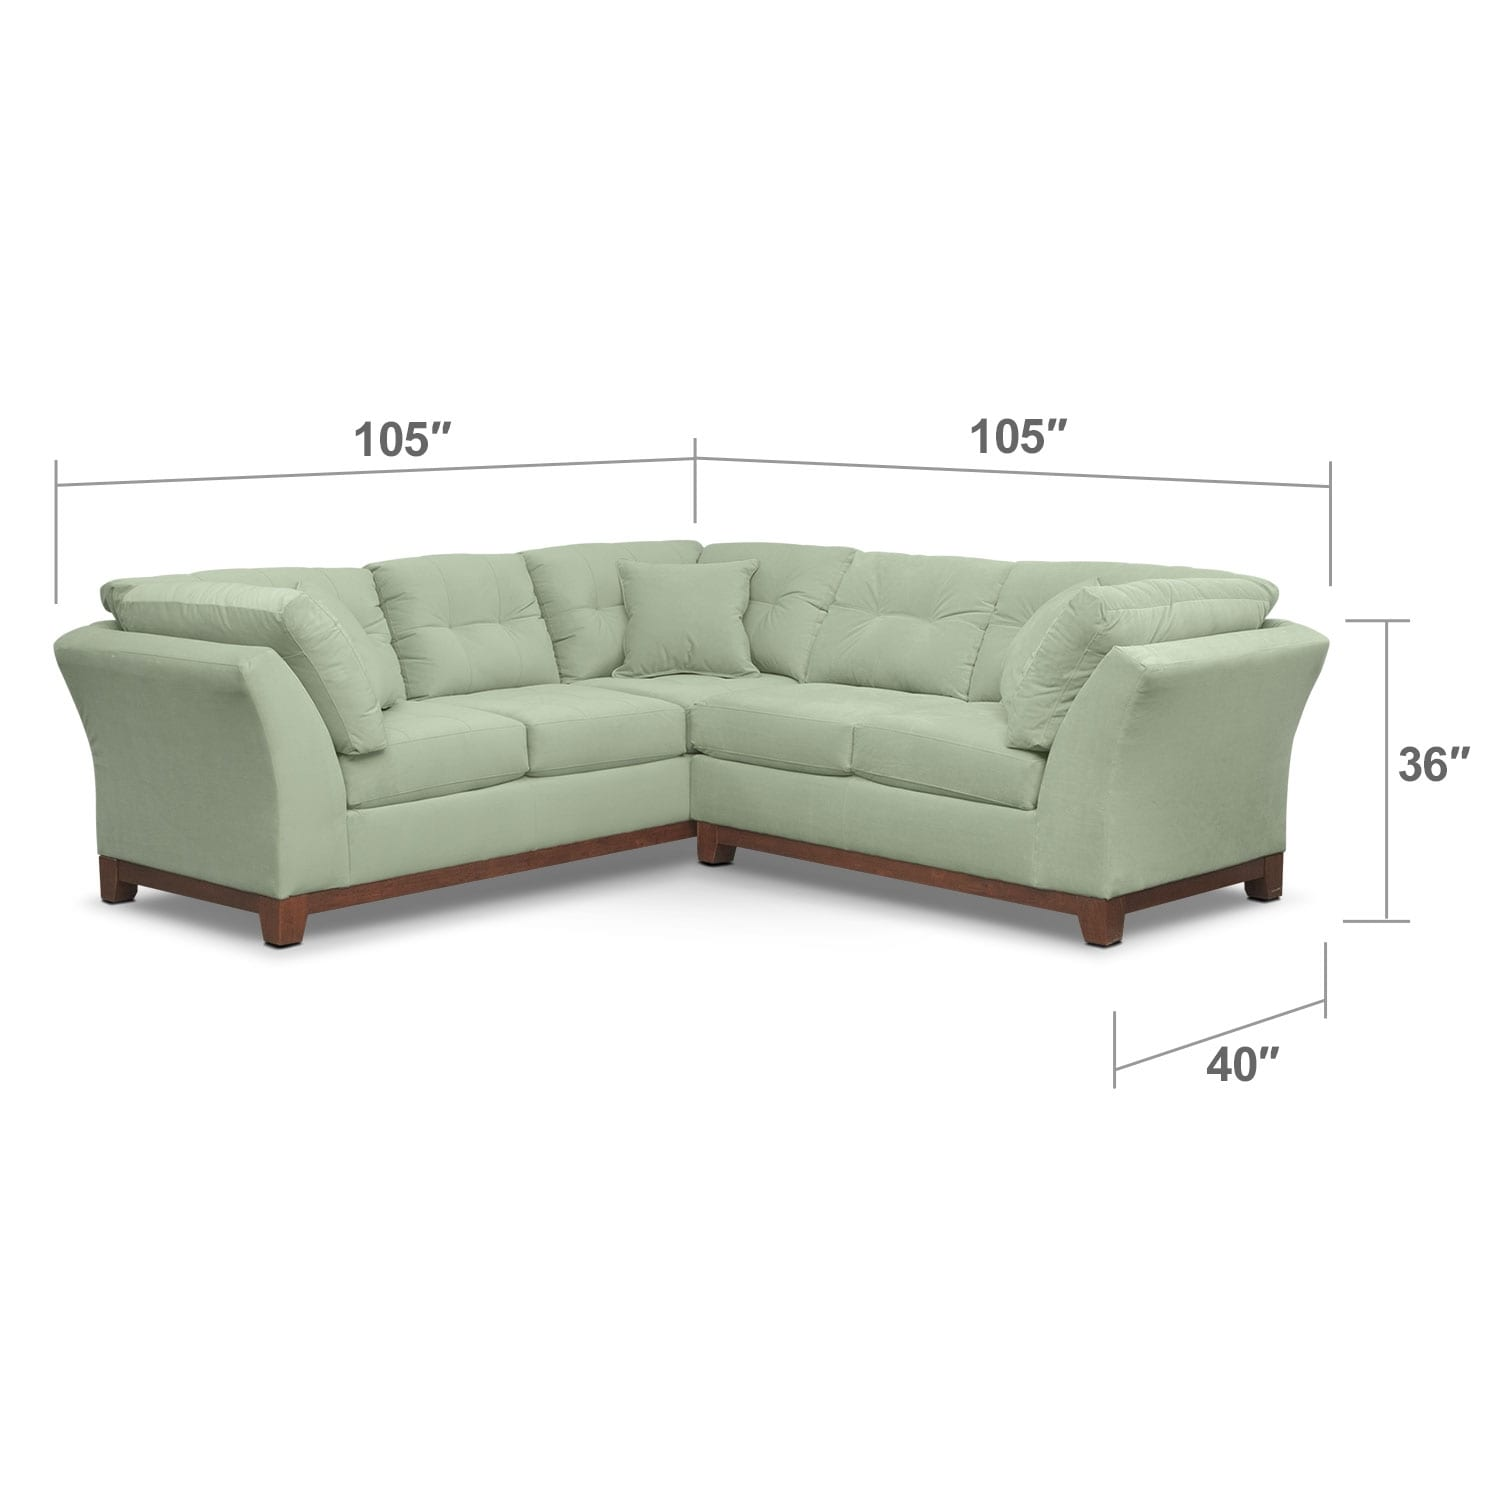 """Living Room Furniture - Solace 2-Piece Left-Facing 105"""" Sofa Sectional - Spa"""